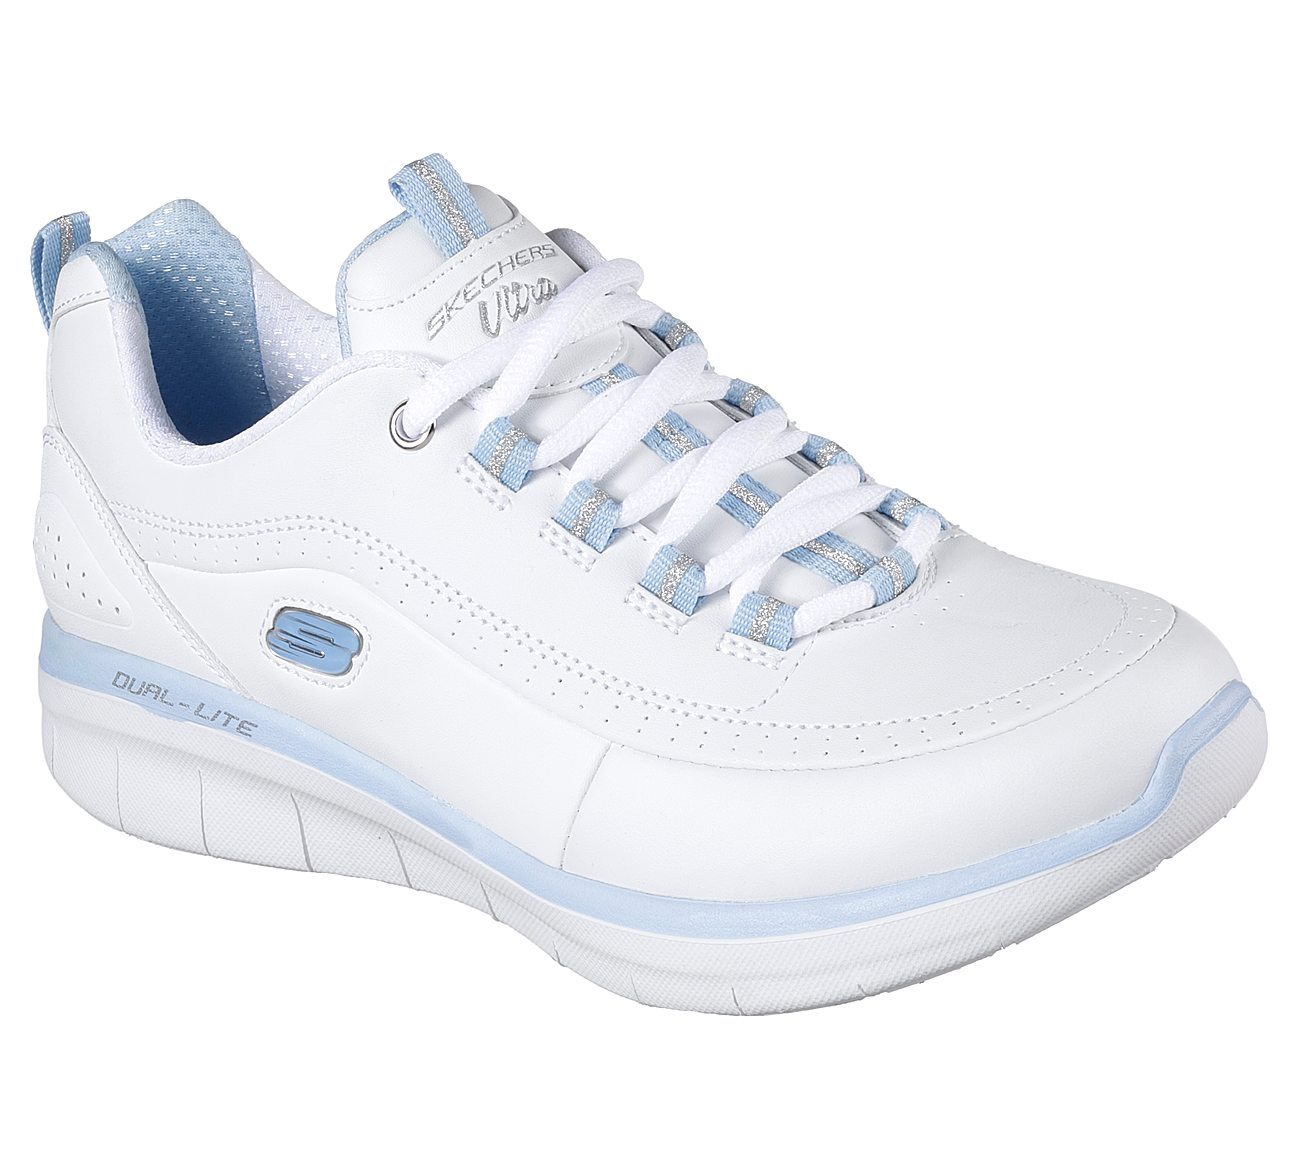 Buy SKECHERS Synergy 2.0 Sport Shoes